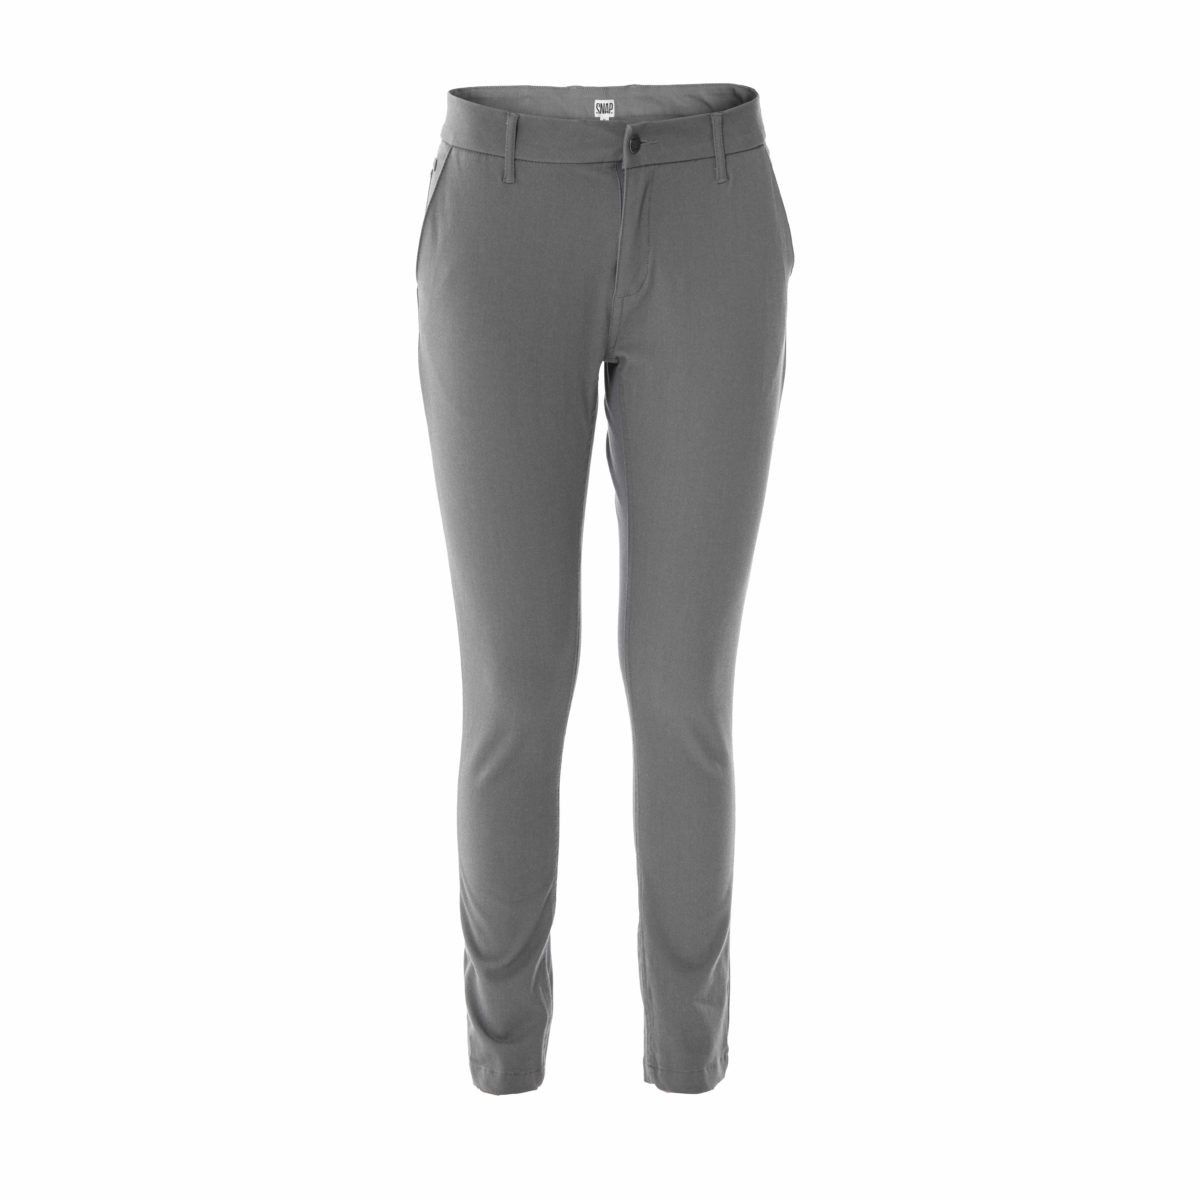 grey chino pants front studio